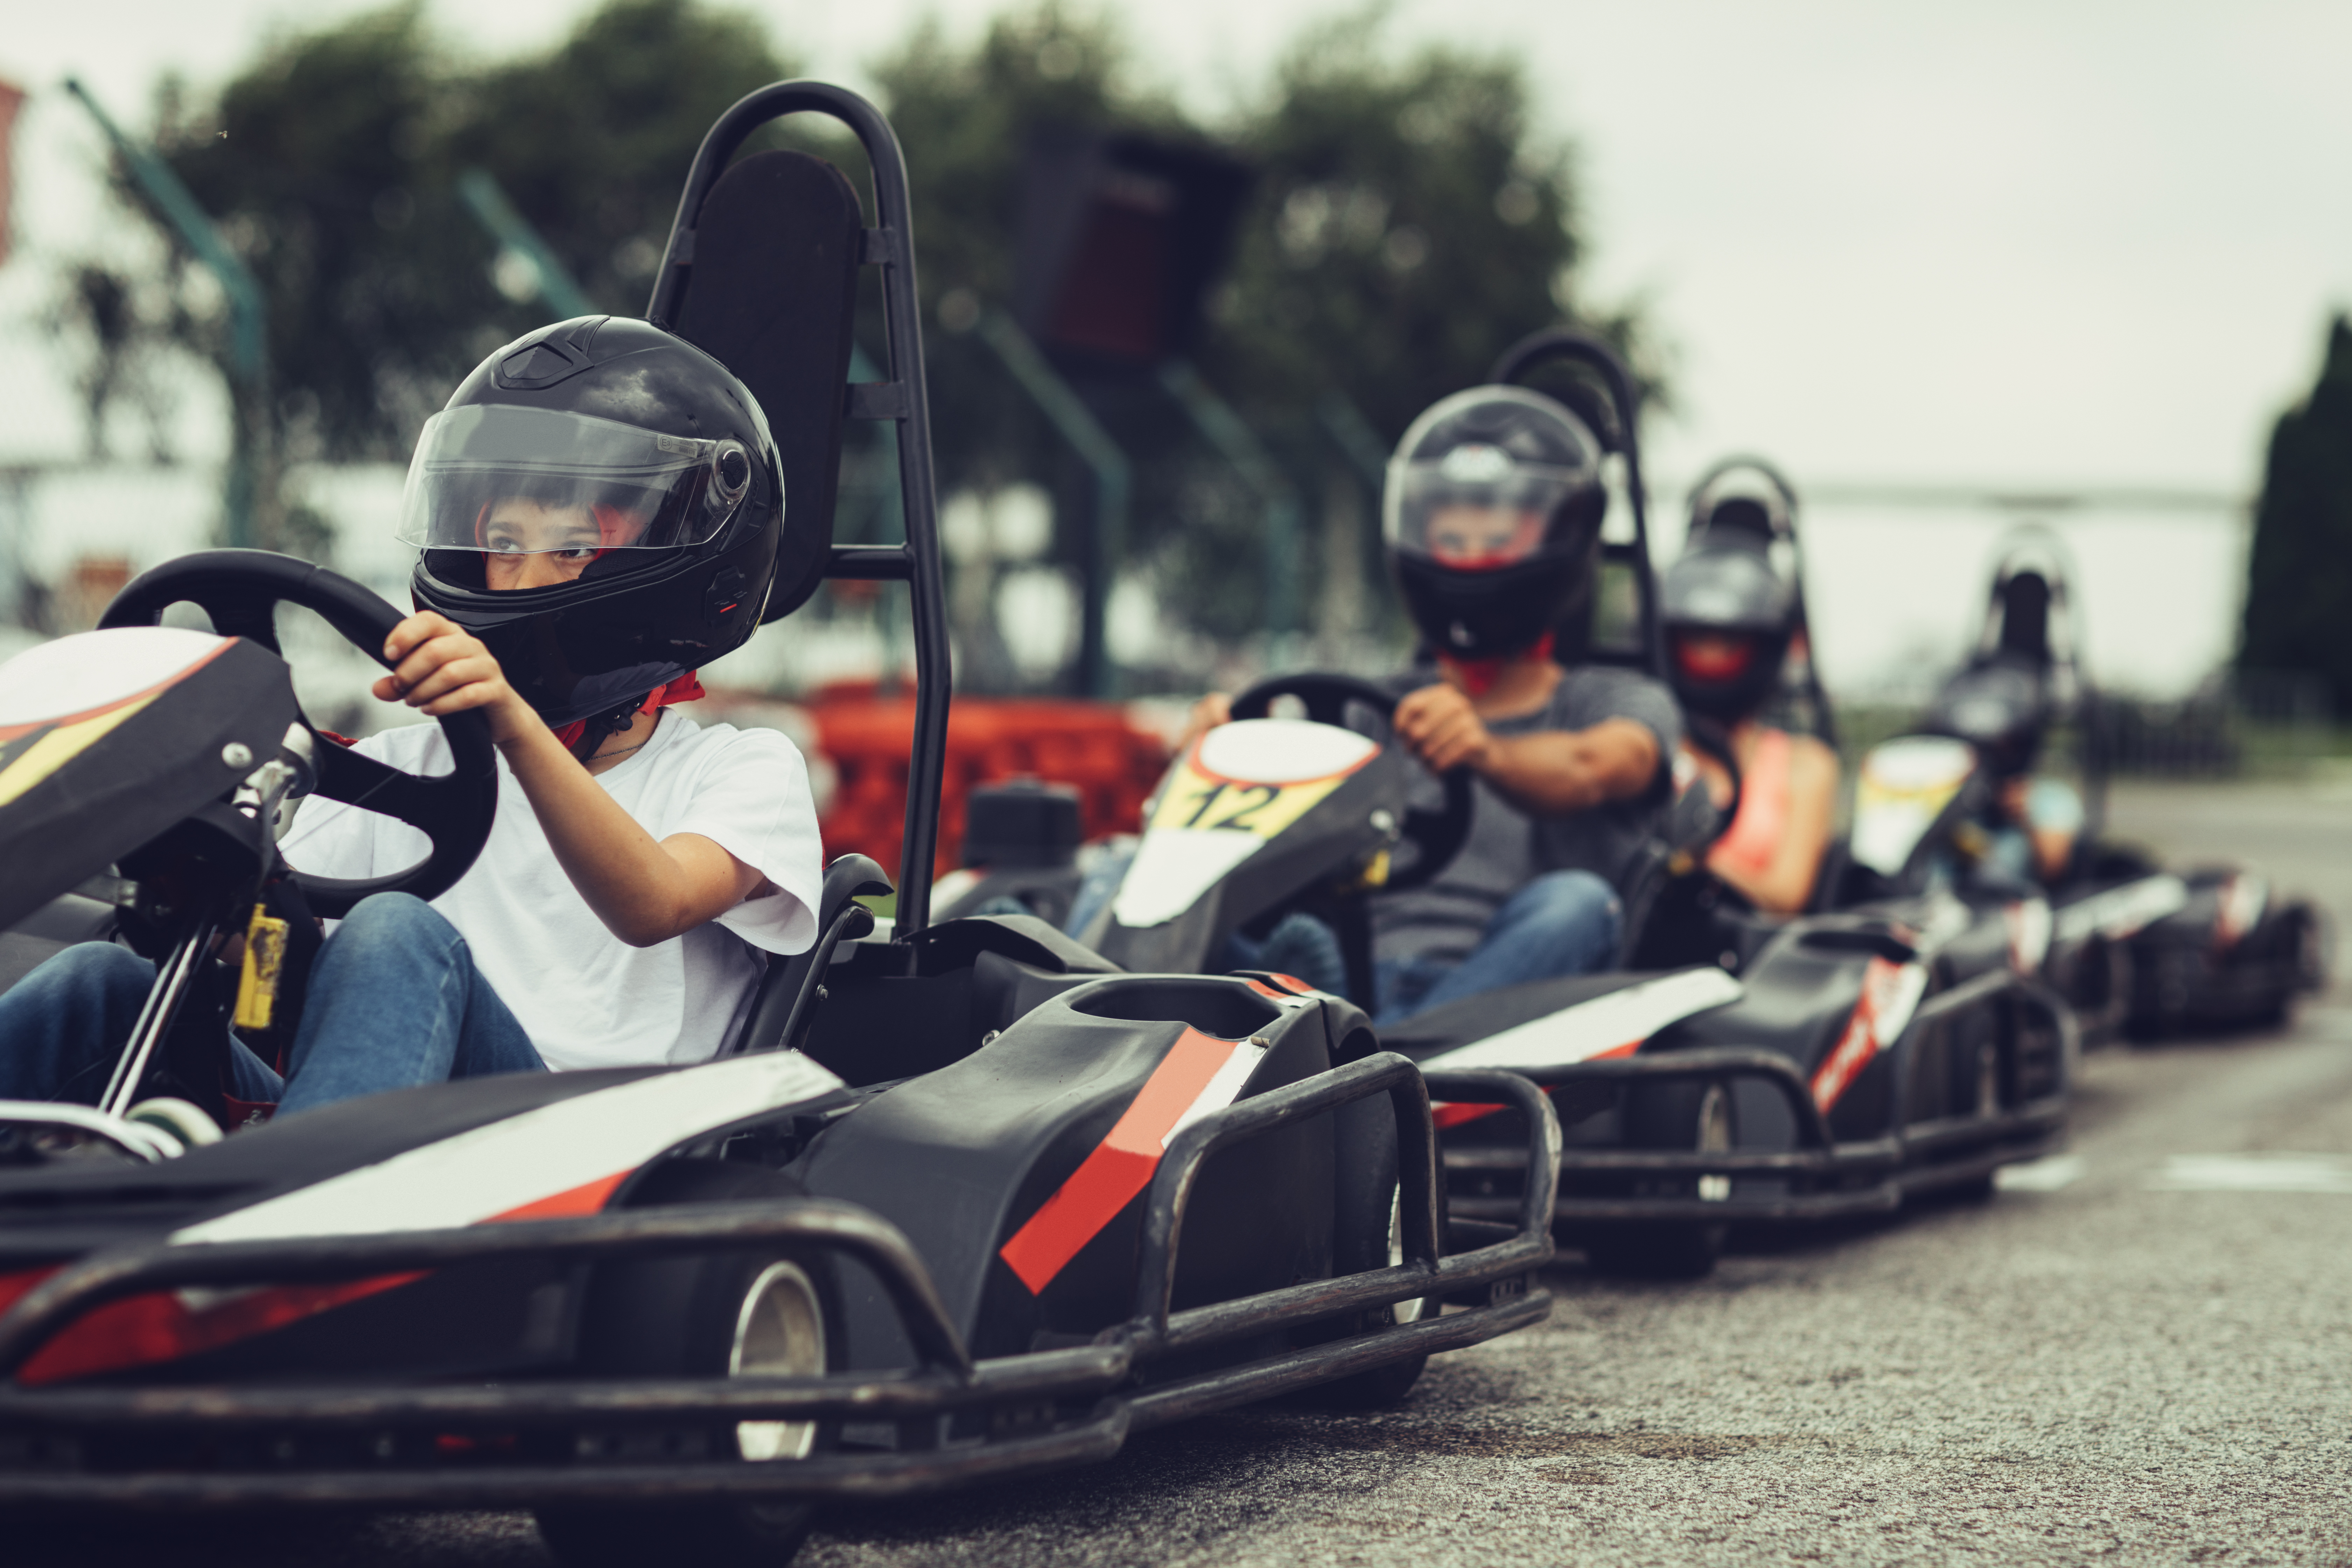 How to Start a Go-Kart Business | Chron com